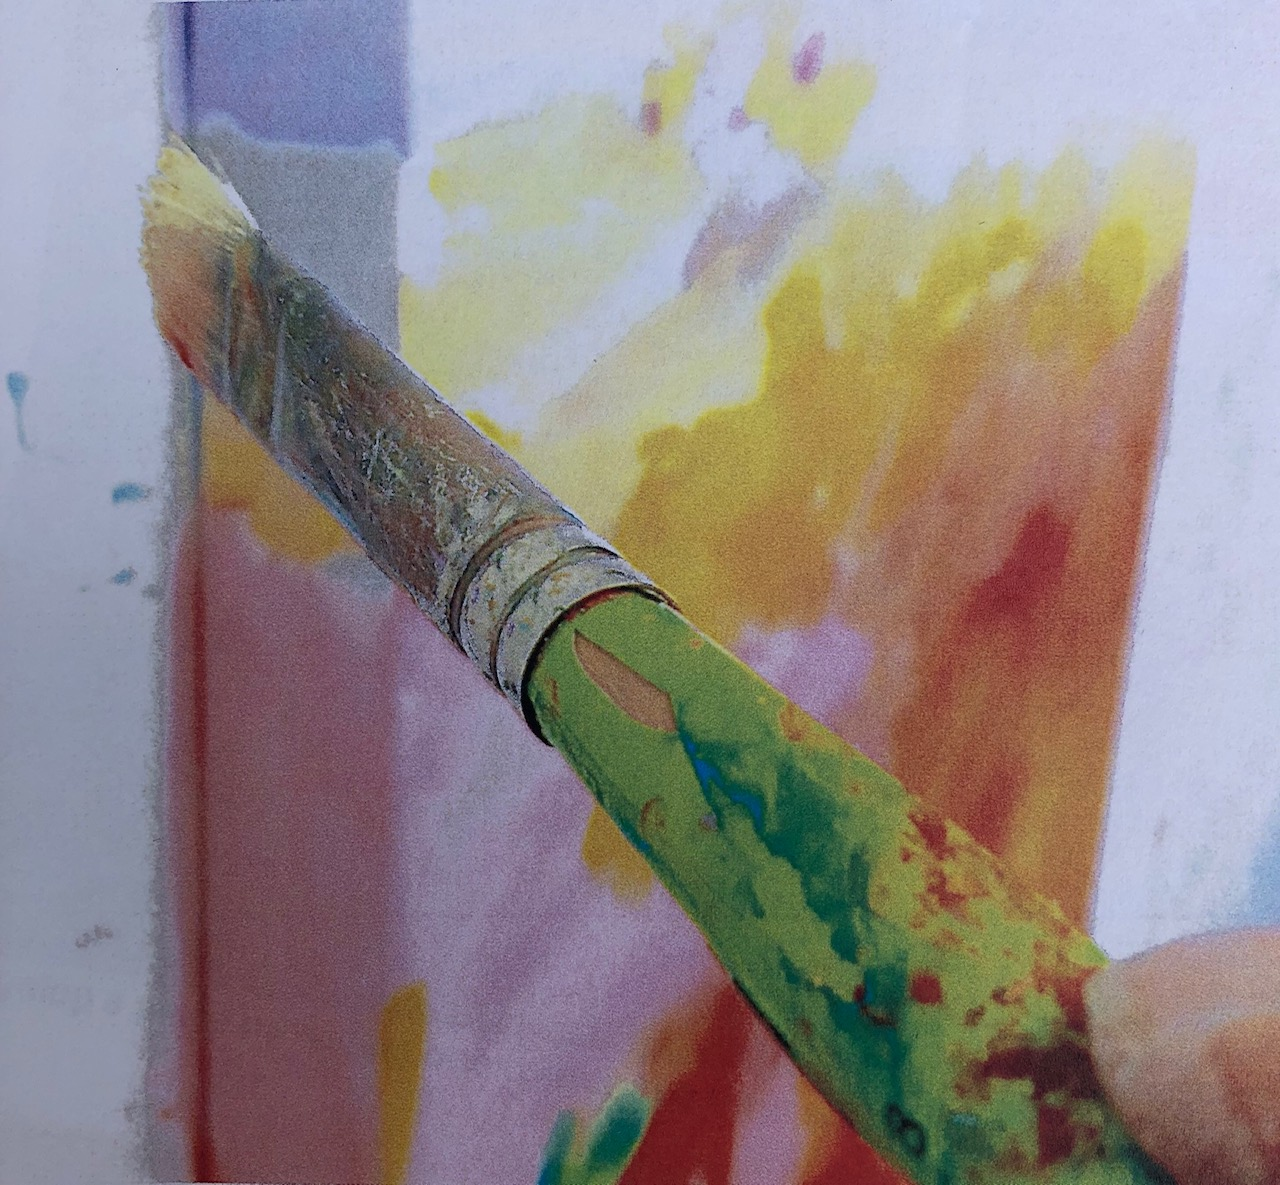 I always paint the edges of my canvases so the image does not always require a frame.